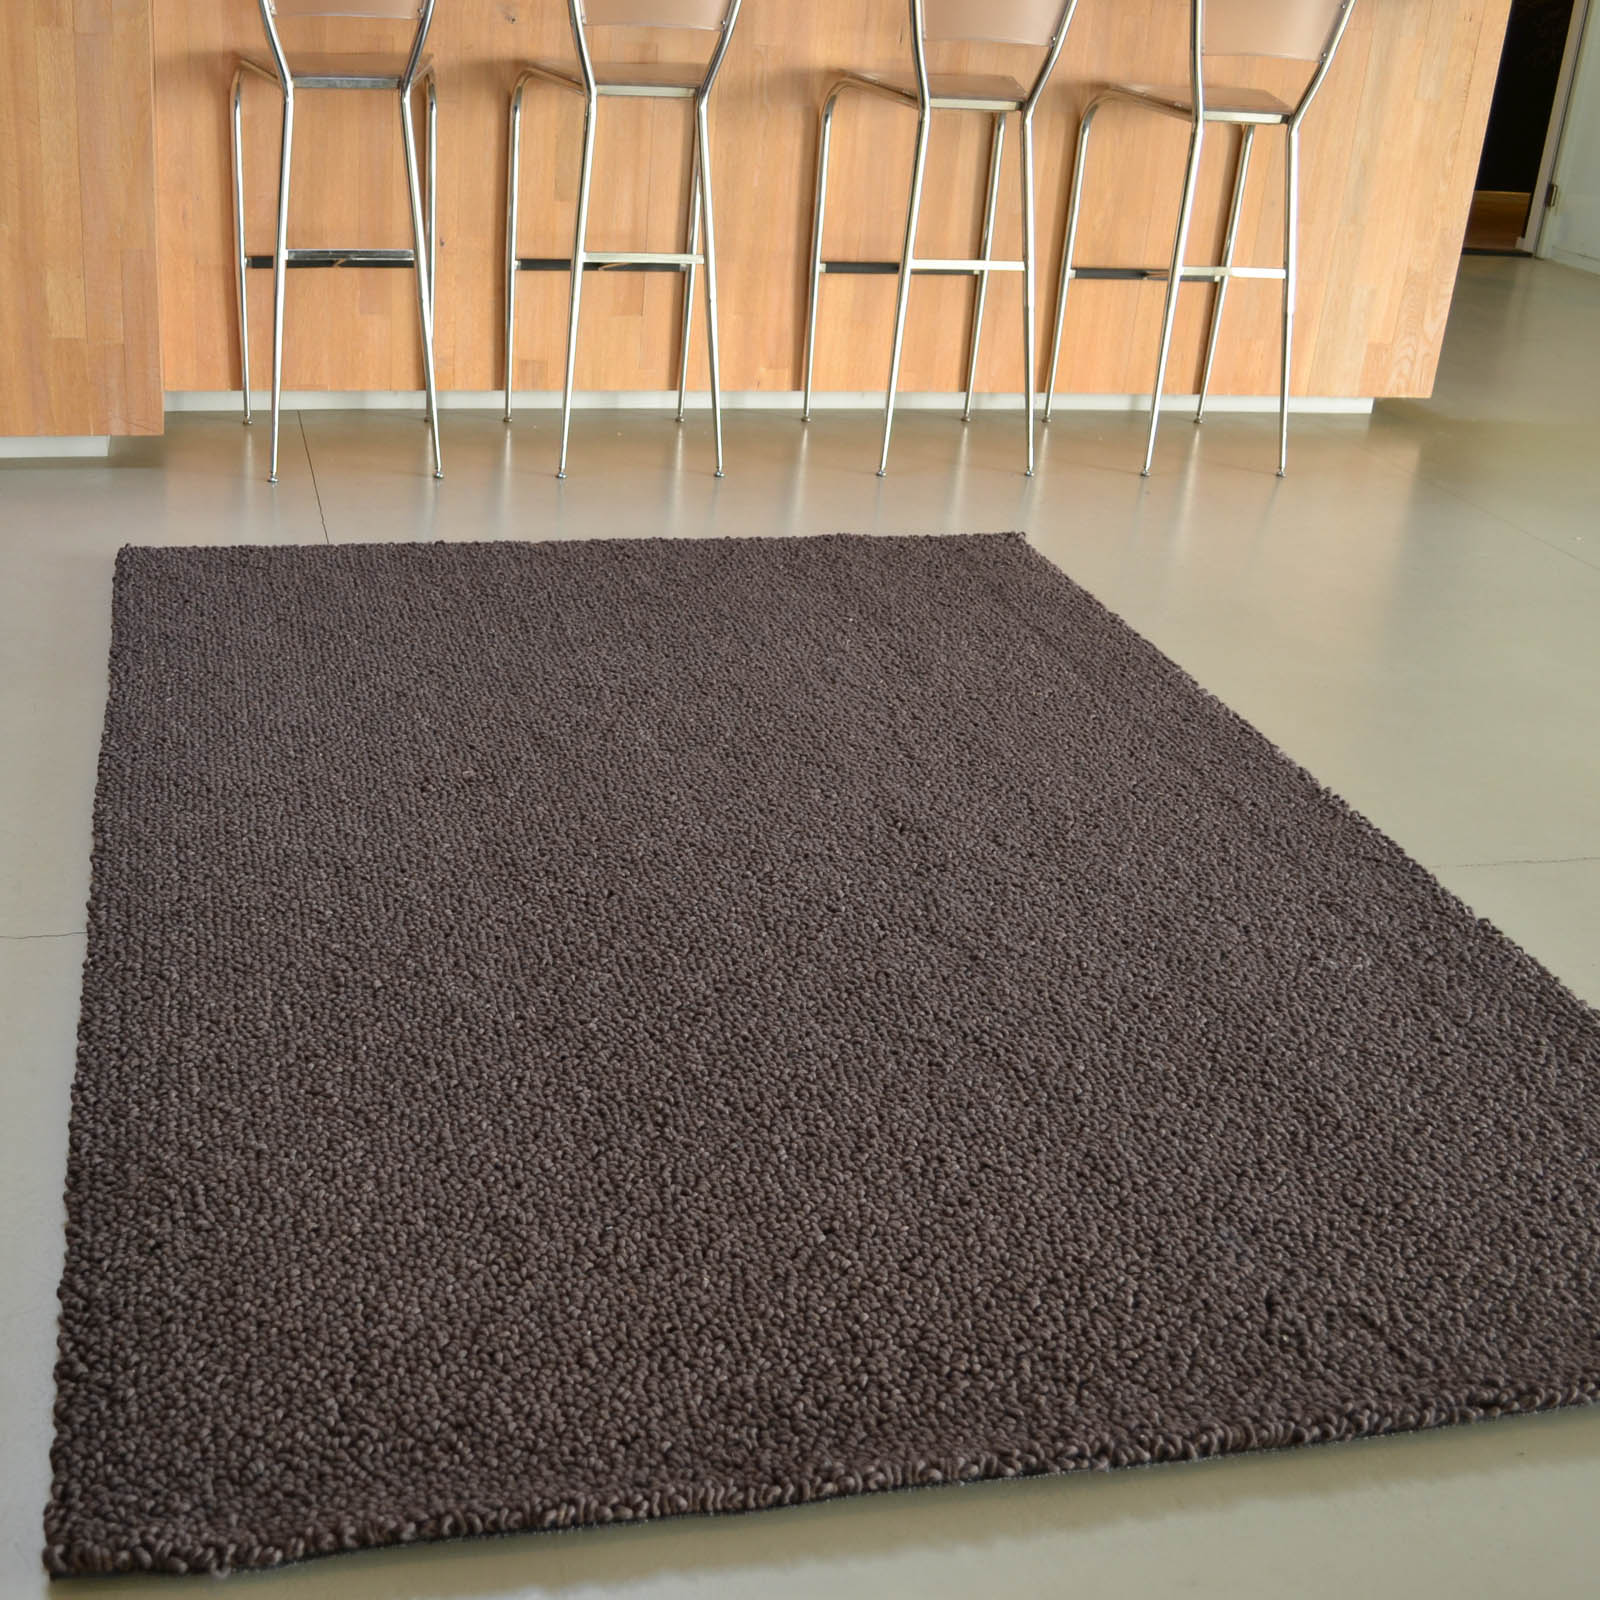 Gravel Boucle Rugs 68105 in Brown by Brink and Campman